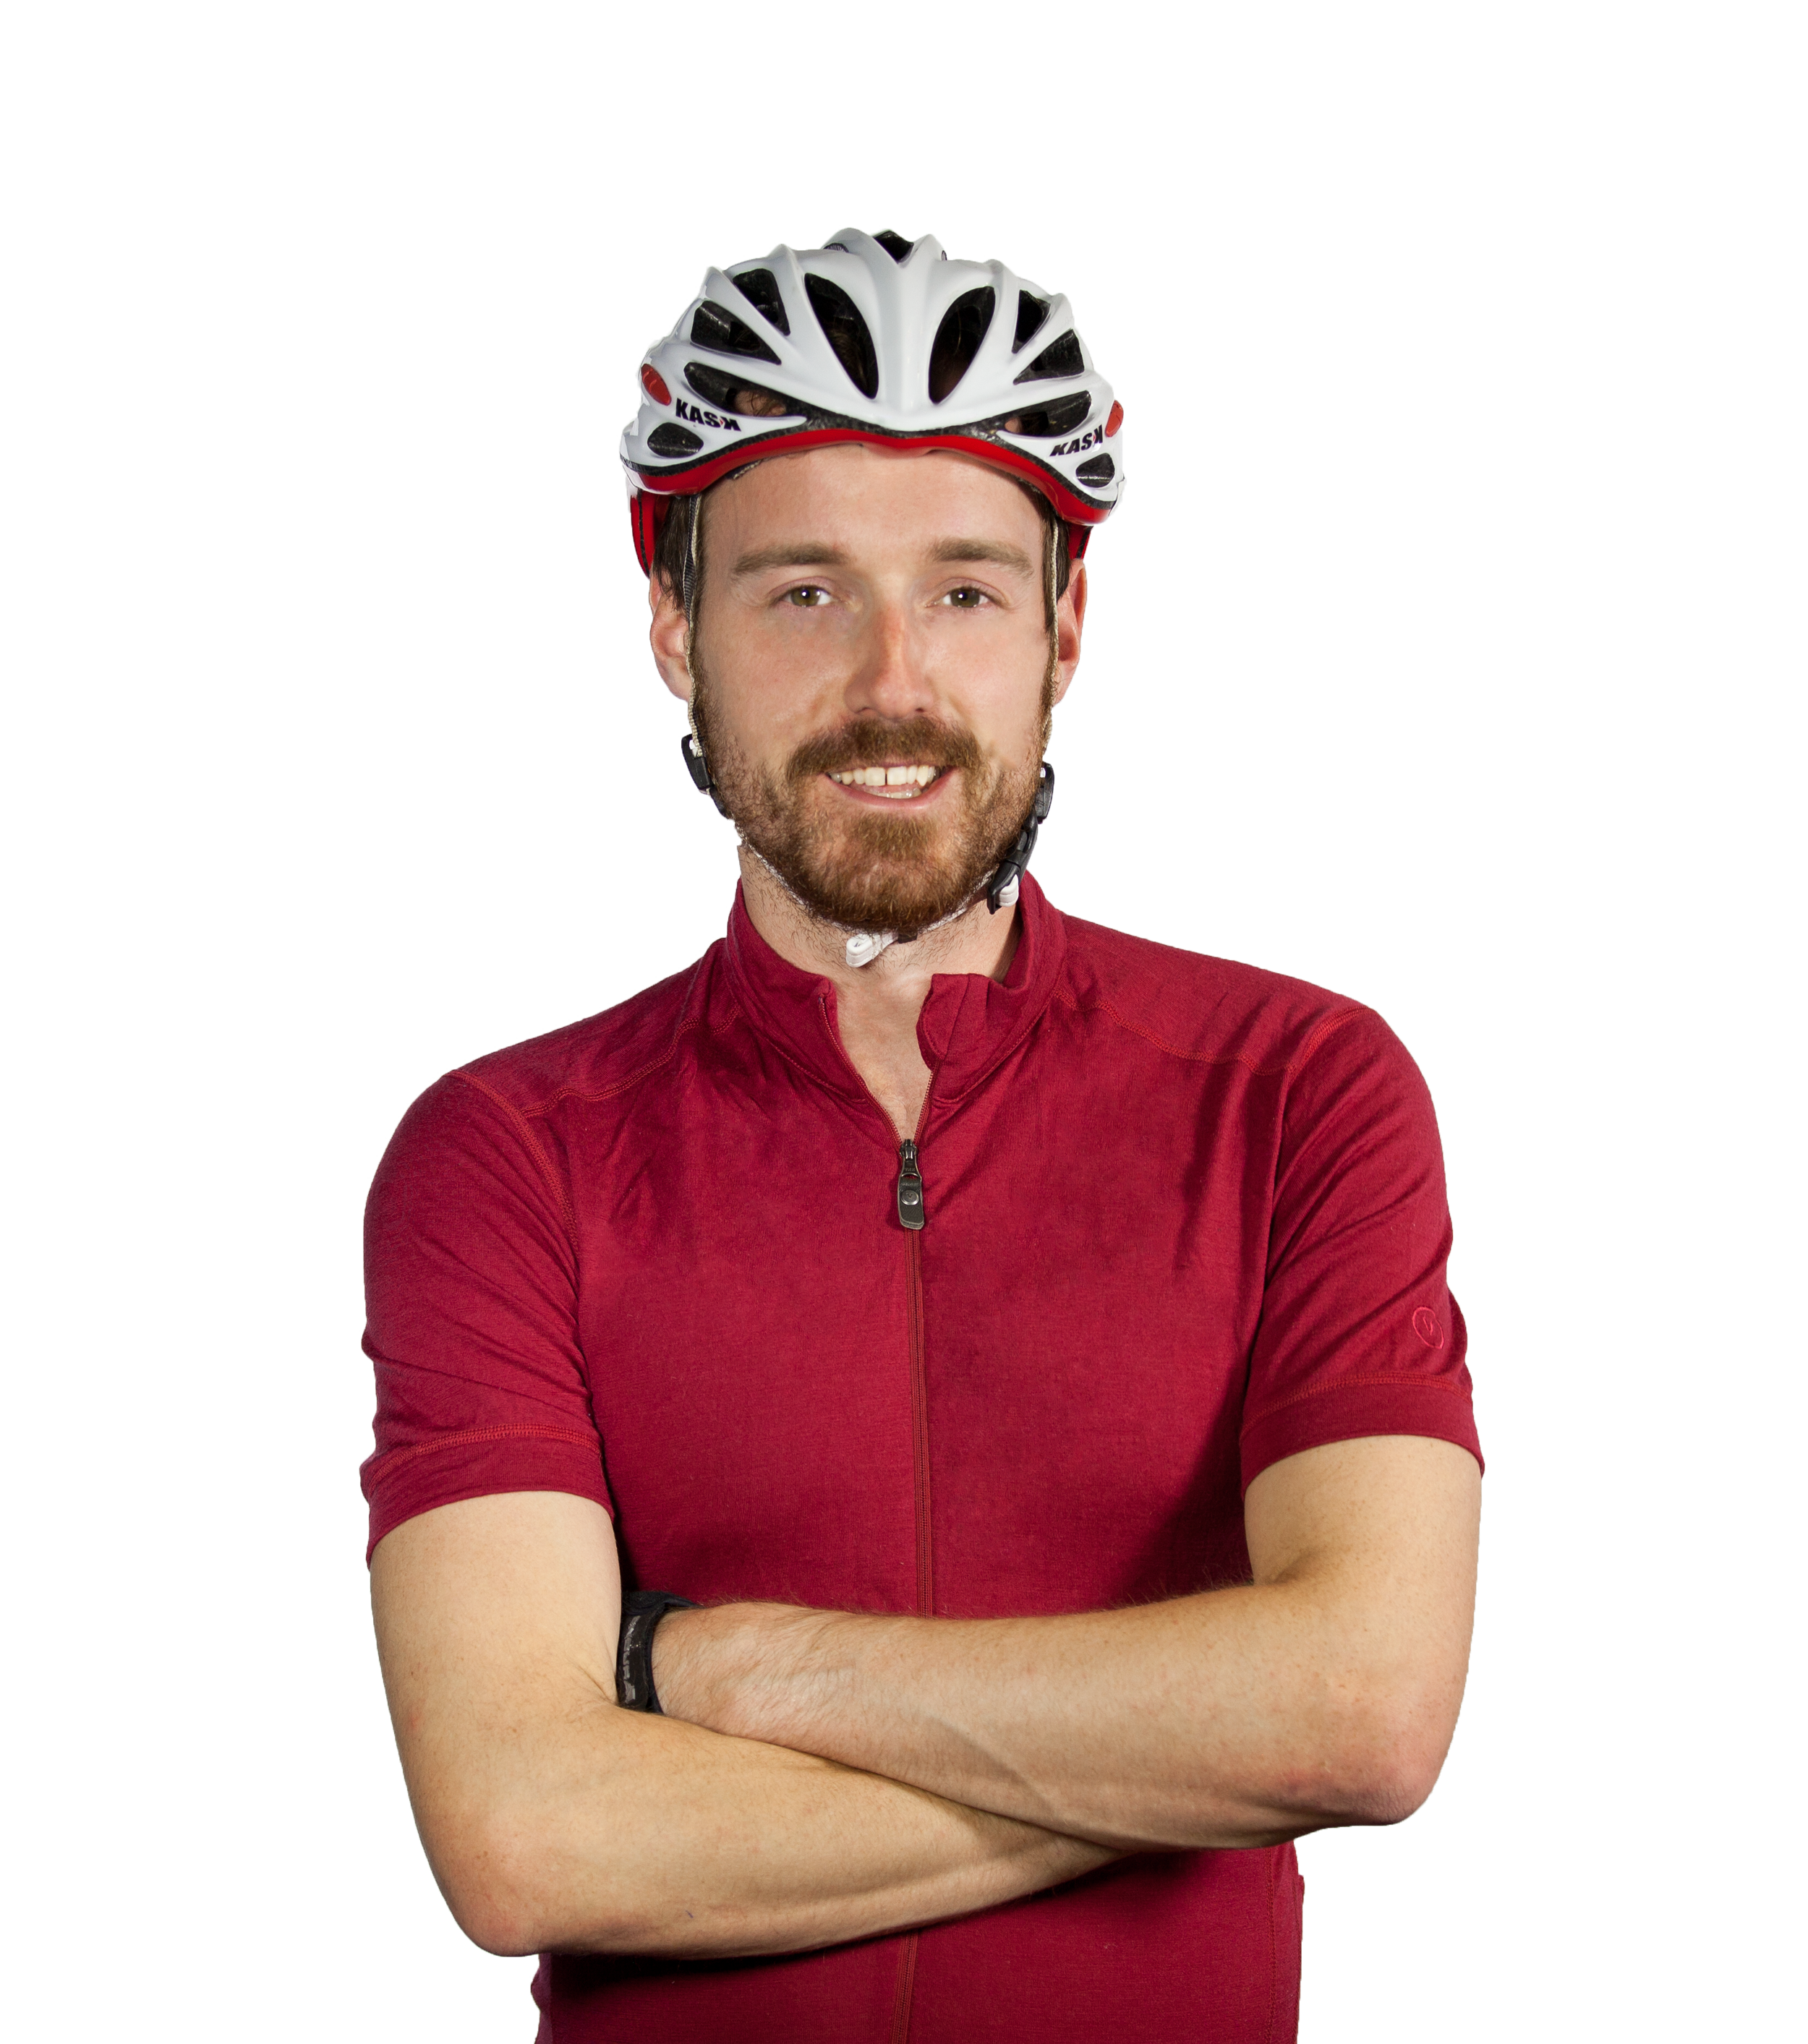 Rob-Cycling.png